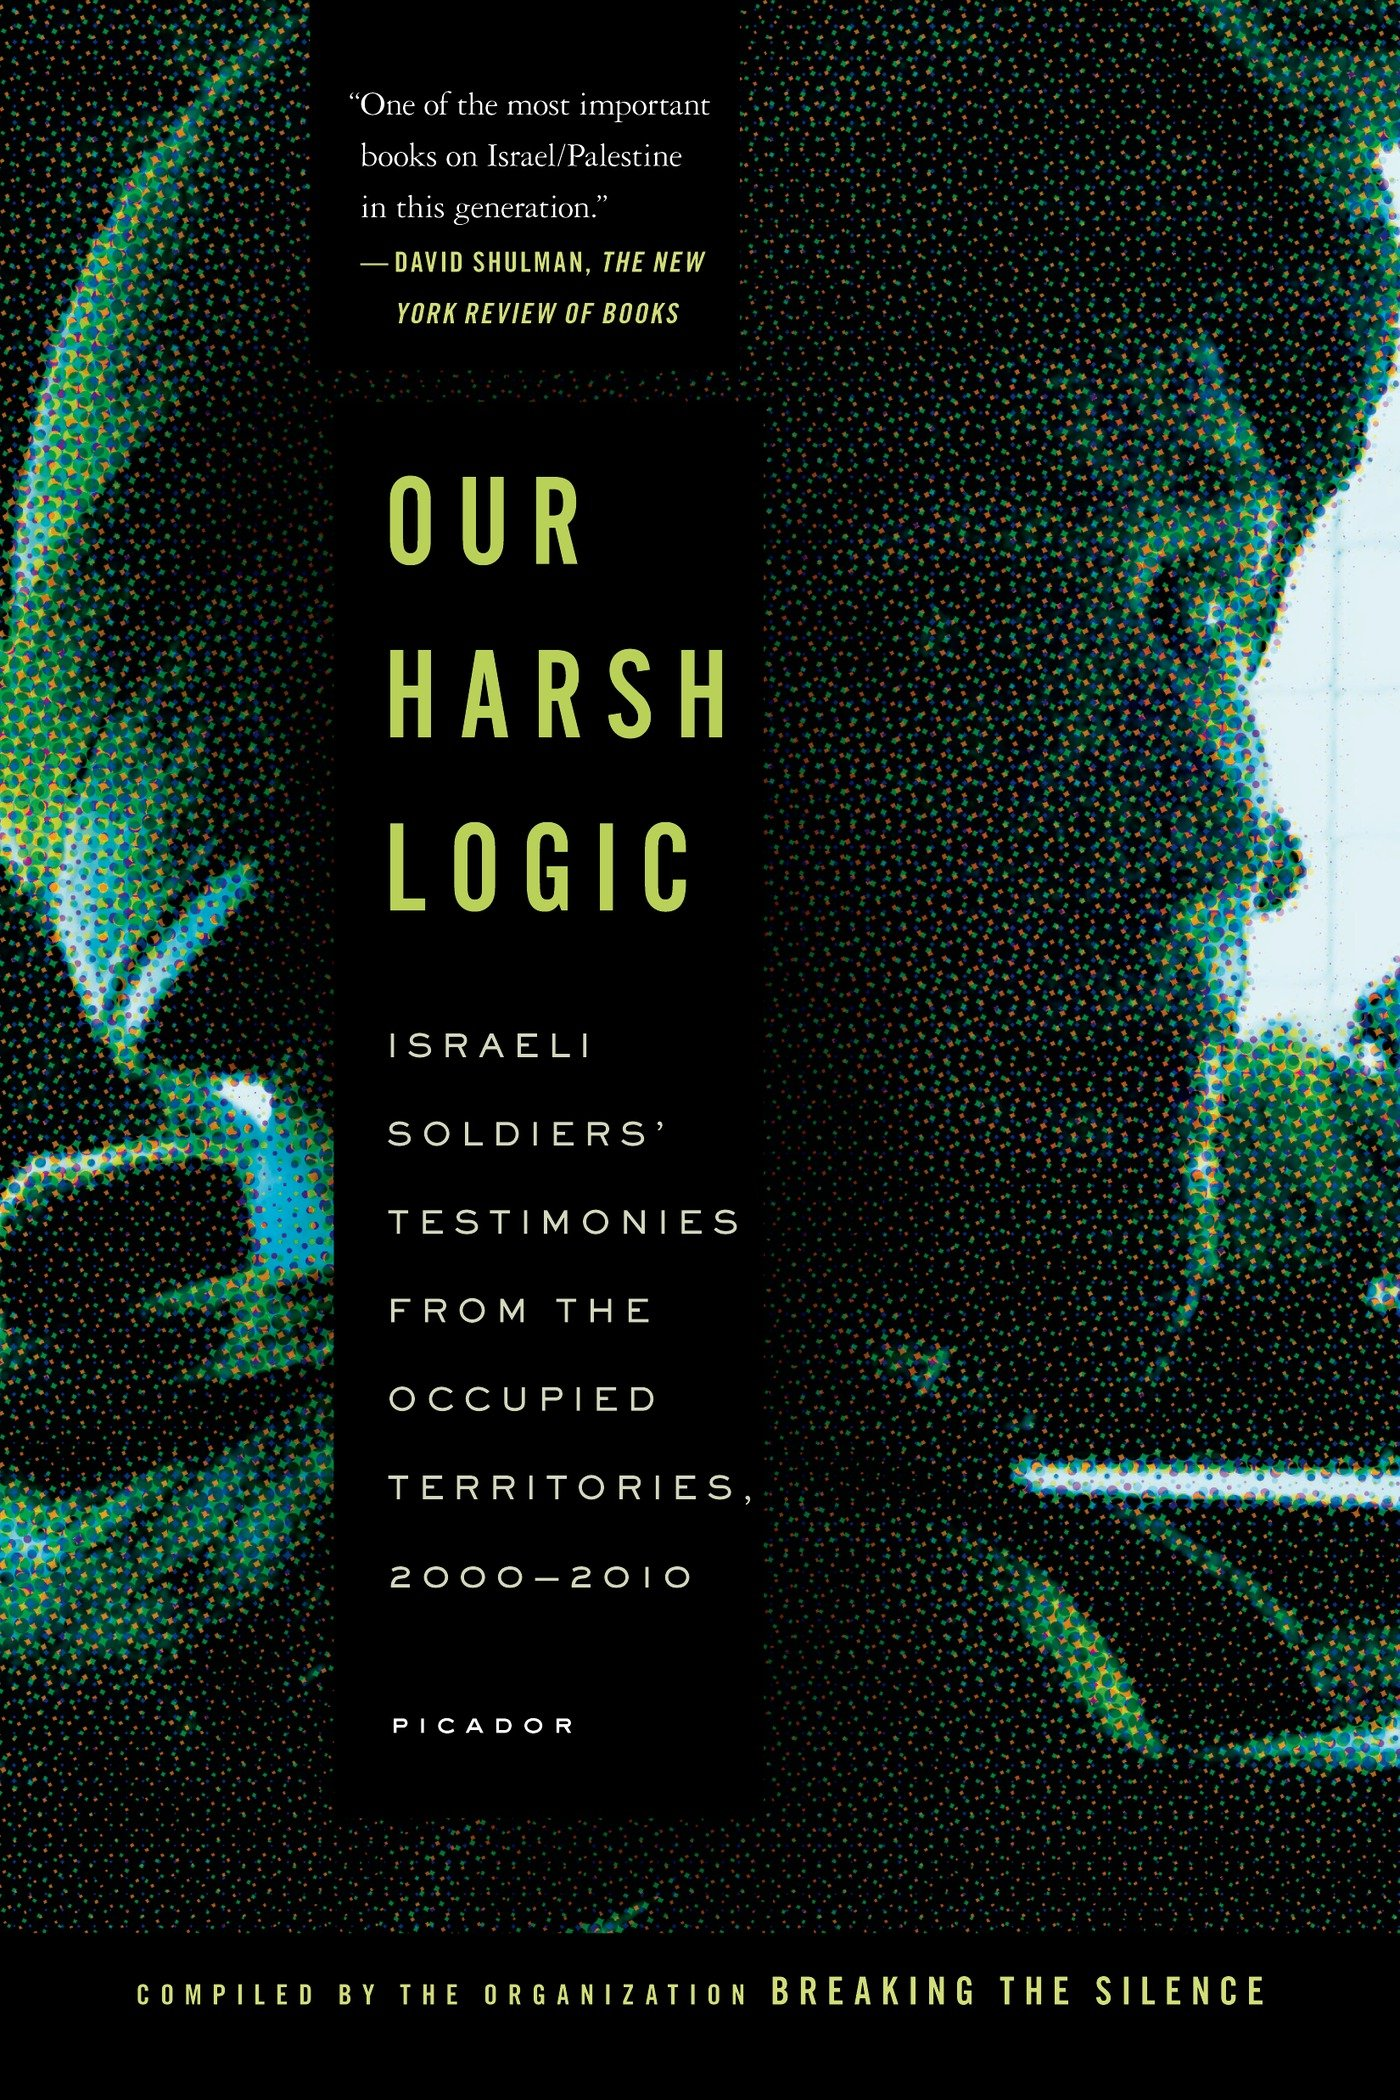 Our Harsh Logic: Israeli Soldiers' Testimonies from the Occupied Territories, 2000-2010 (Breaking the Silence Organizat)